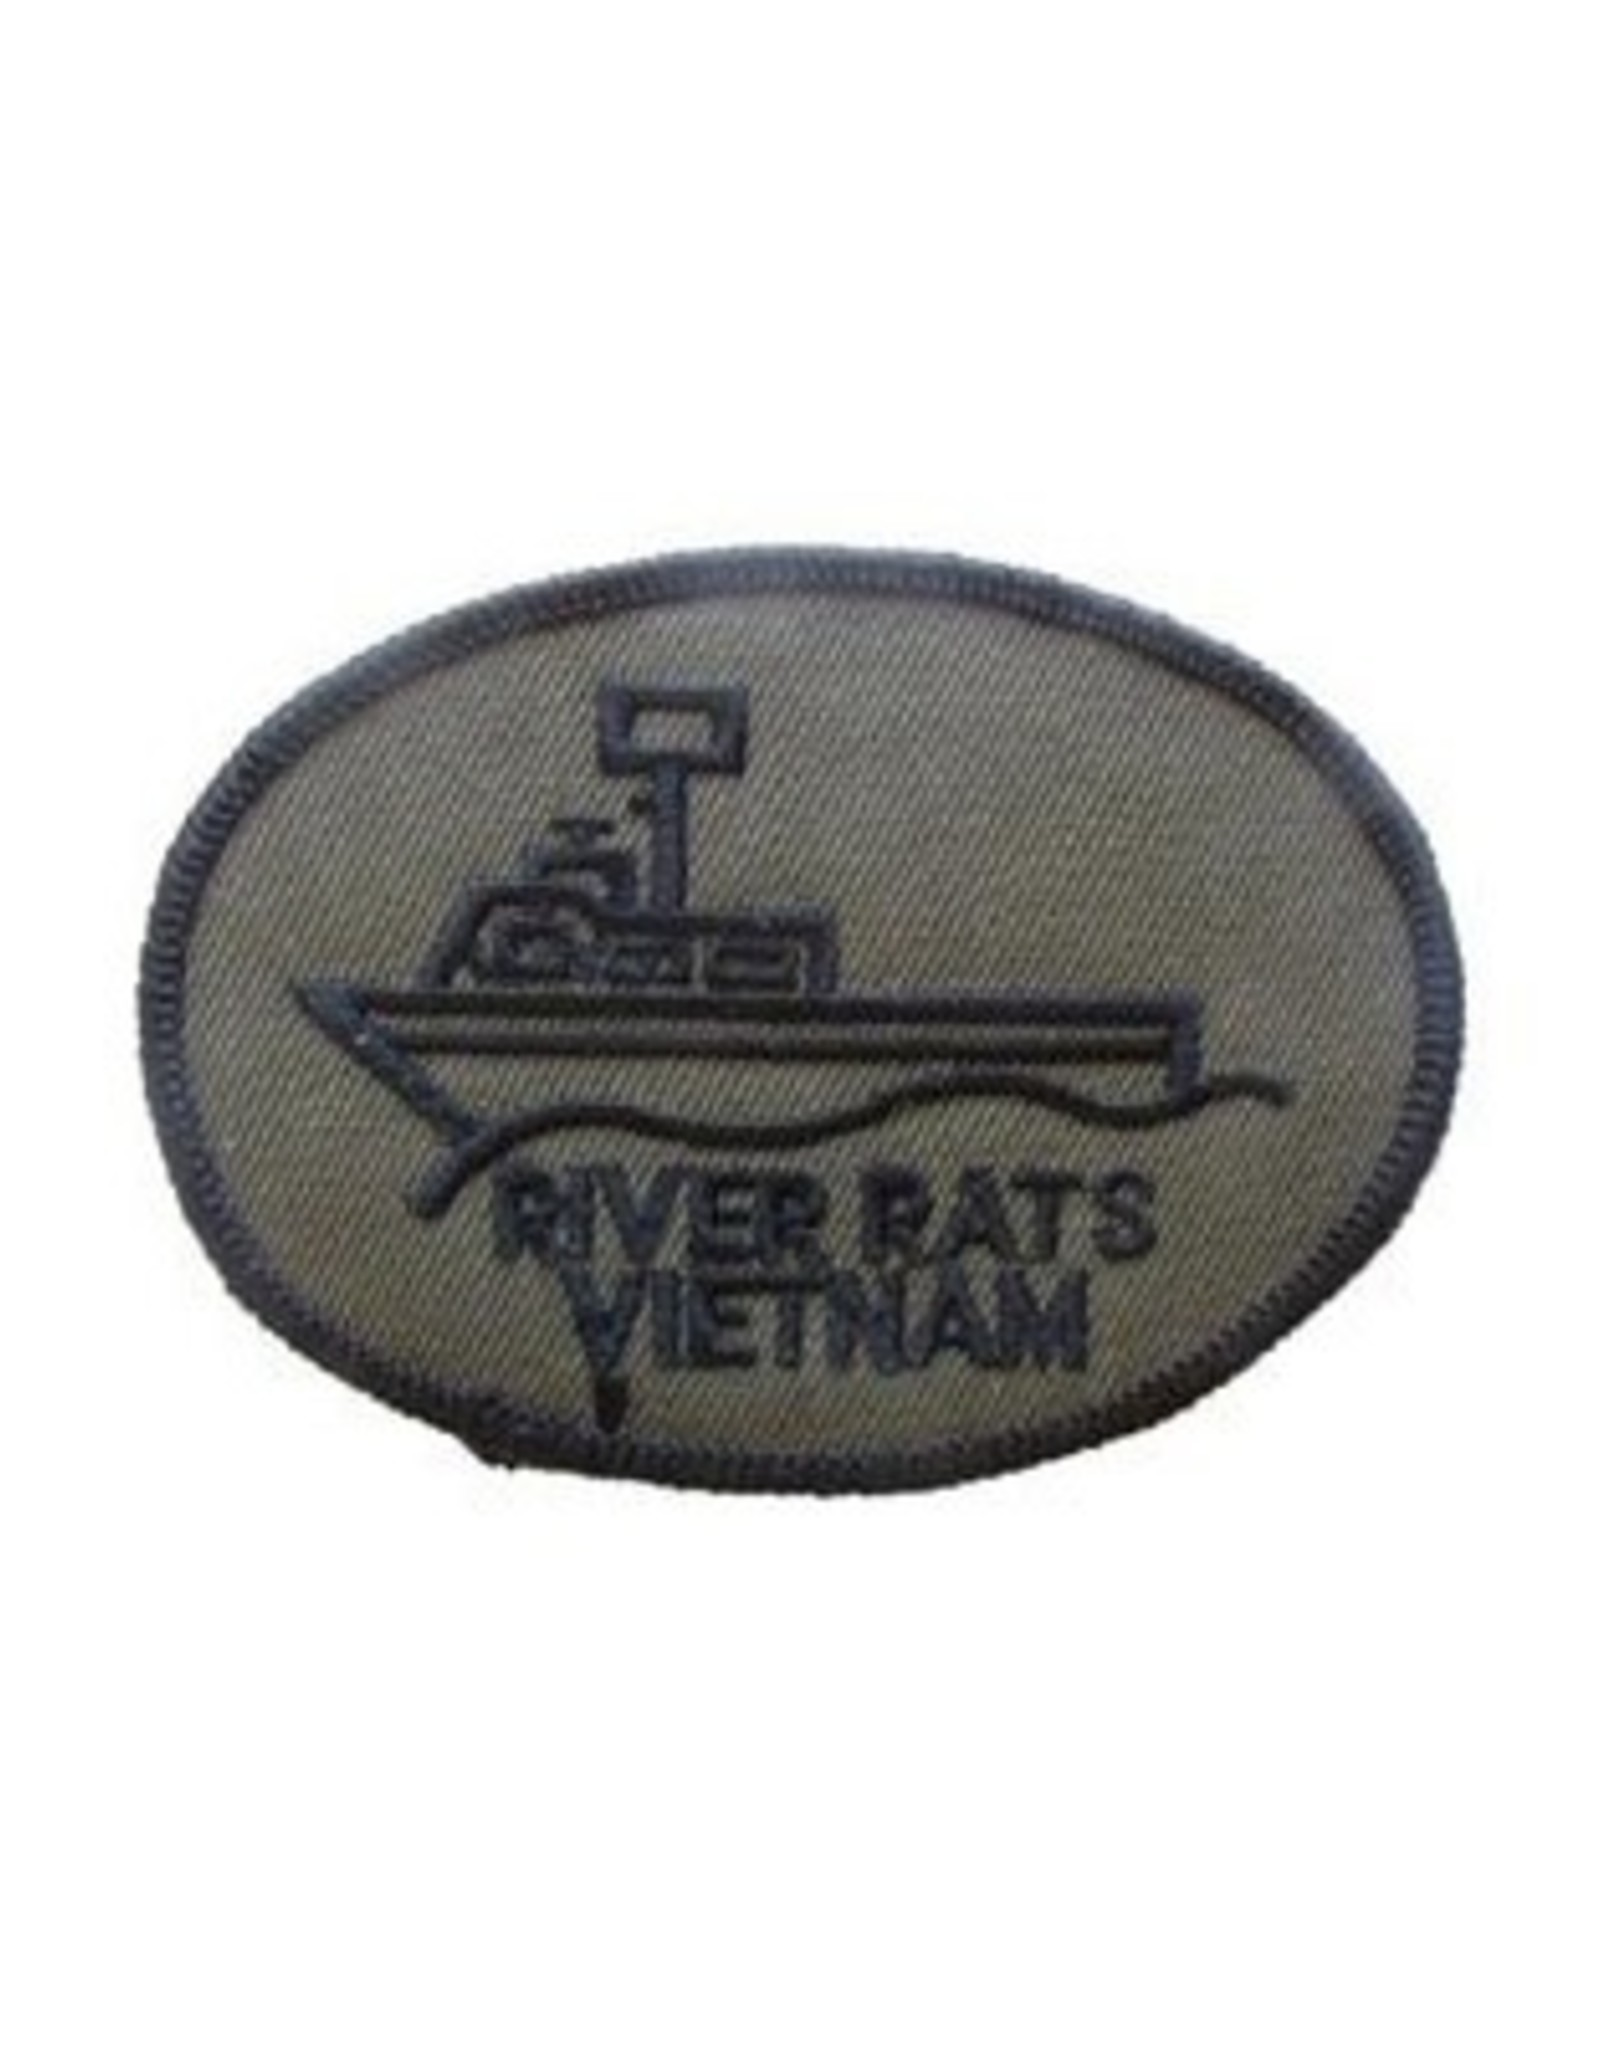 """MidMil Embroidered Navy River Rats Vietnam Patch 3.5"""" wide x 2.4"""" high Olive Drab"""